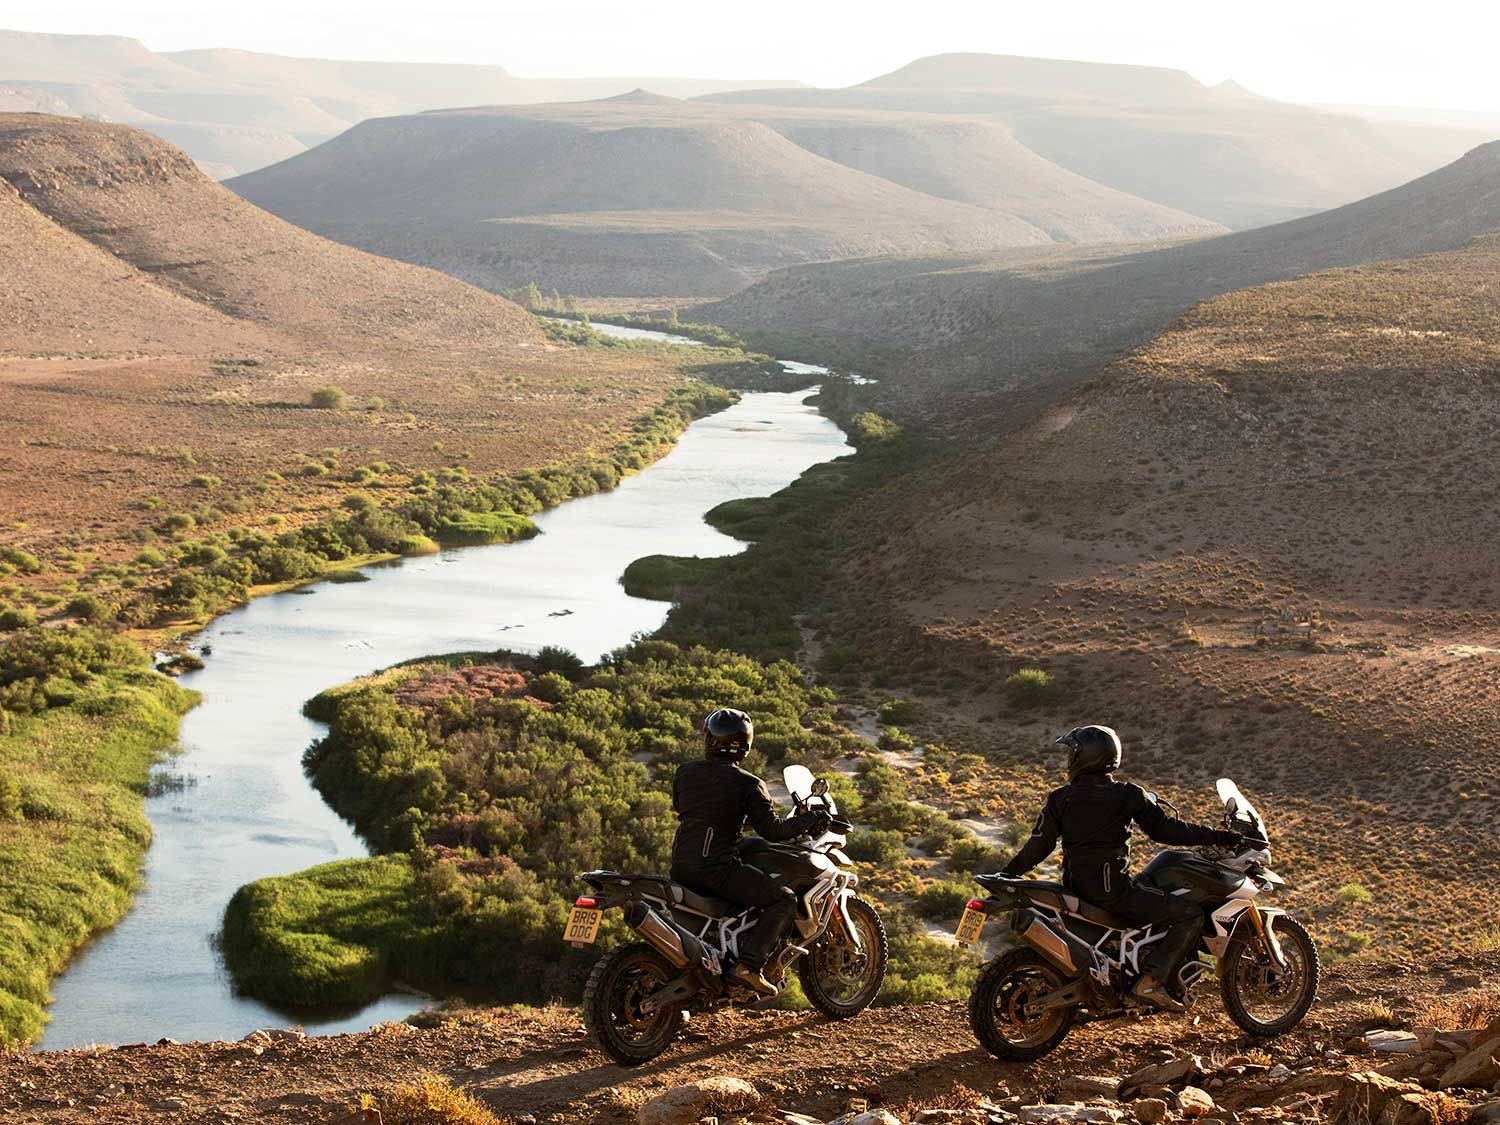 Triumph Motorcycles wants riders to go further with more comfort than ever before.